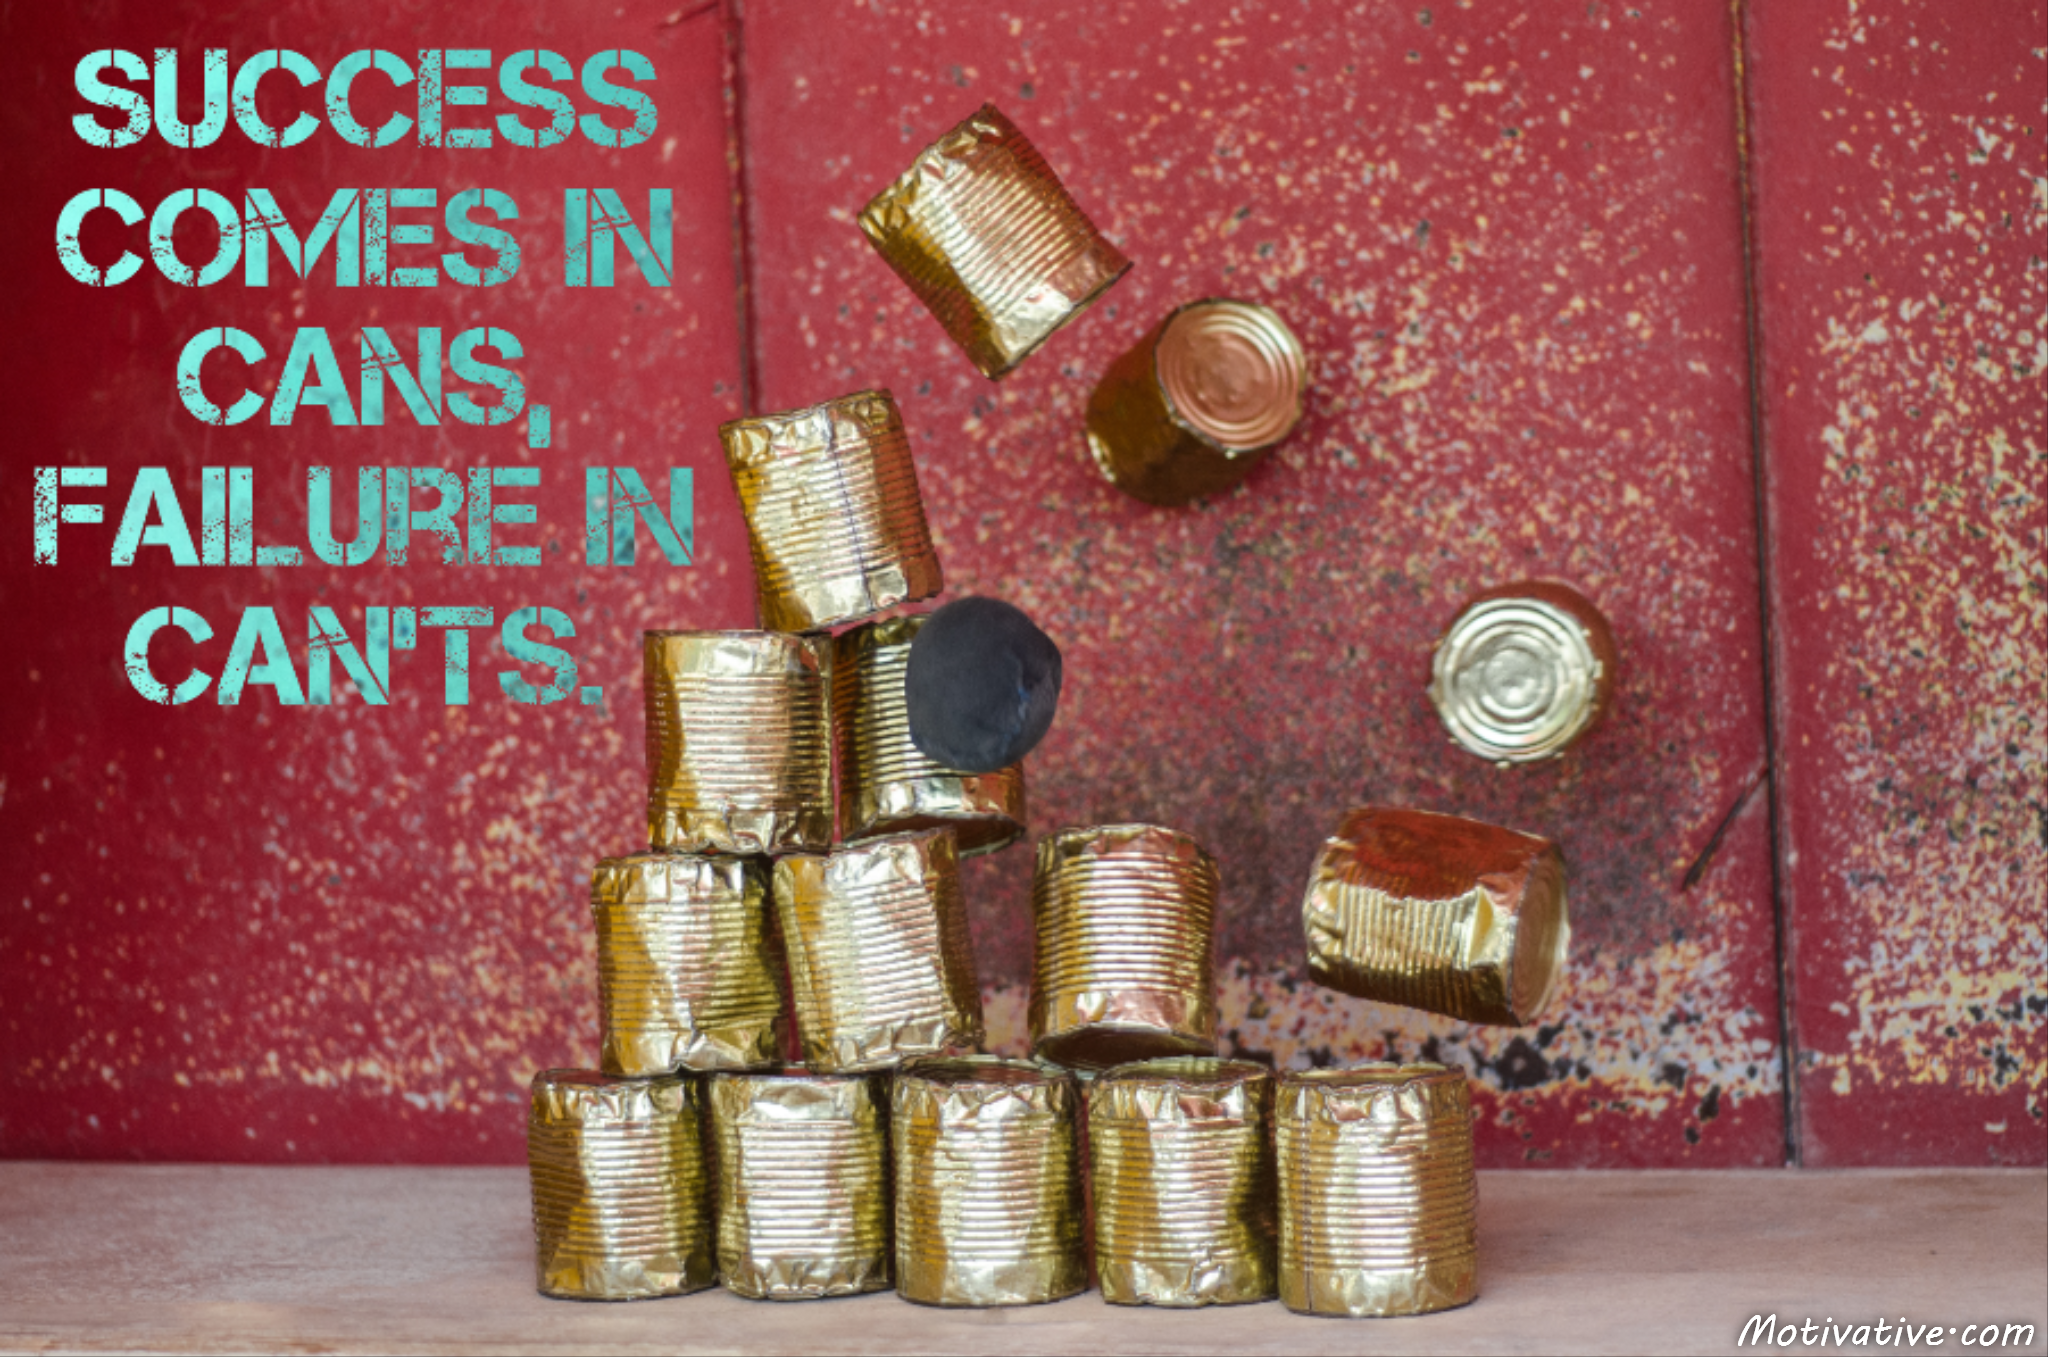 Success comes in cans, failure in can'ts.